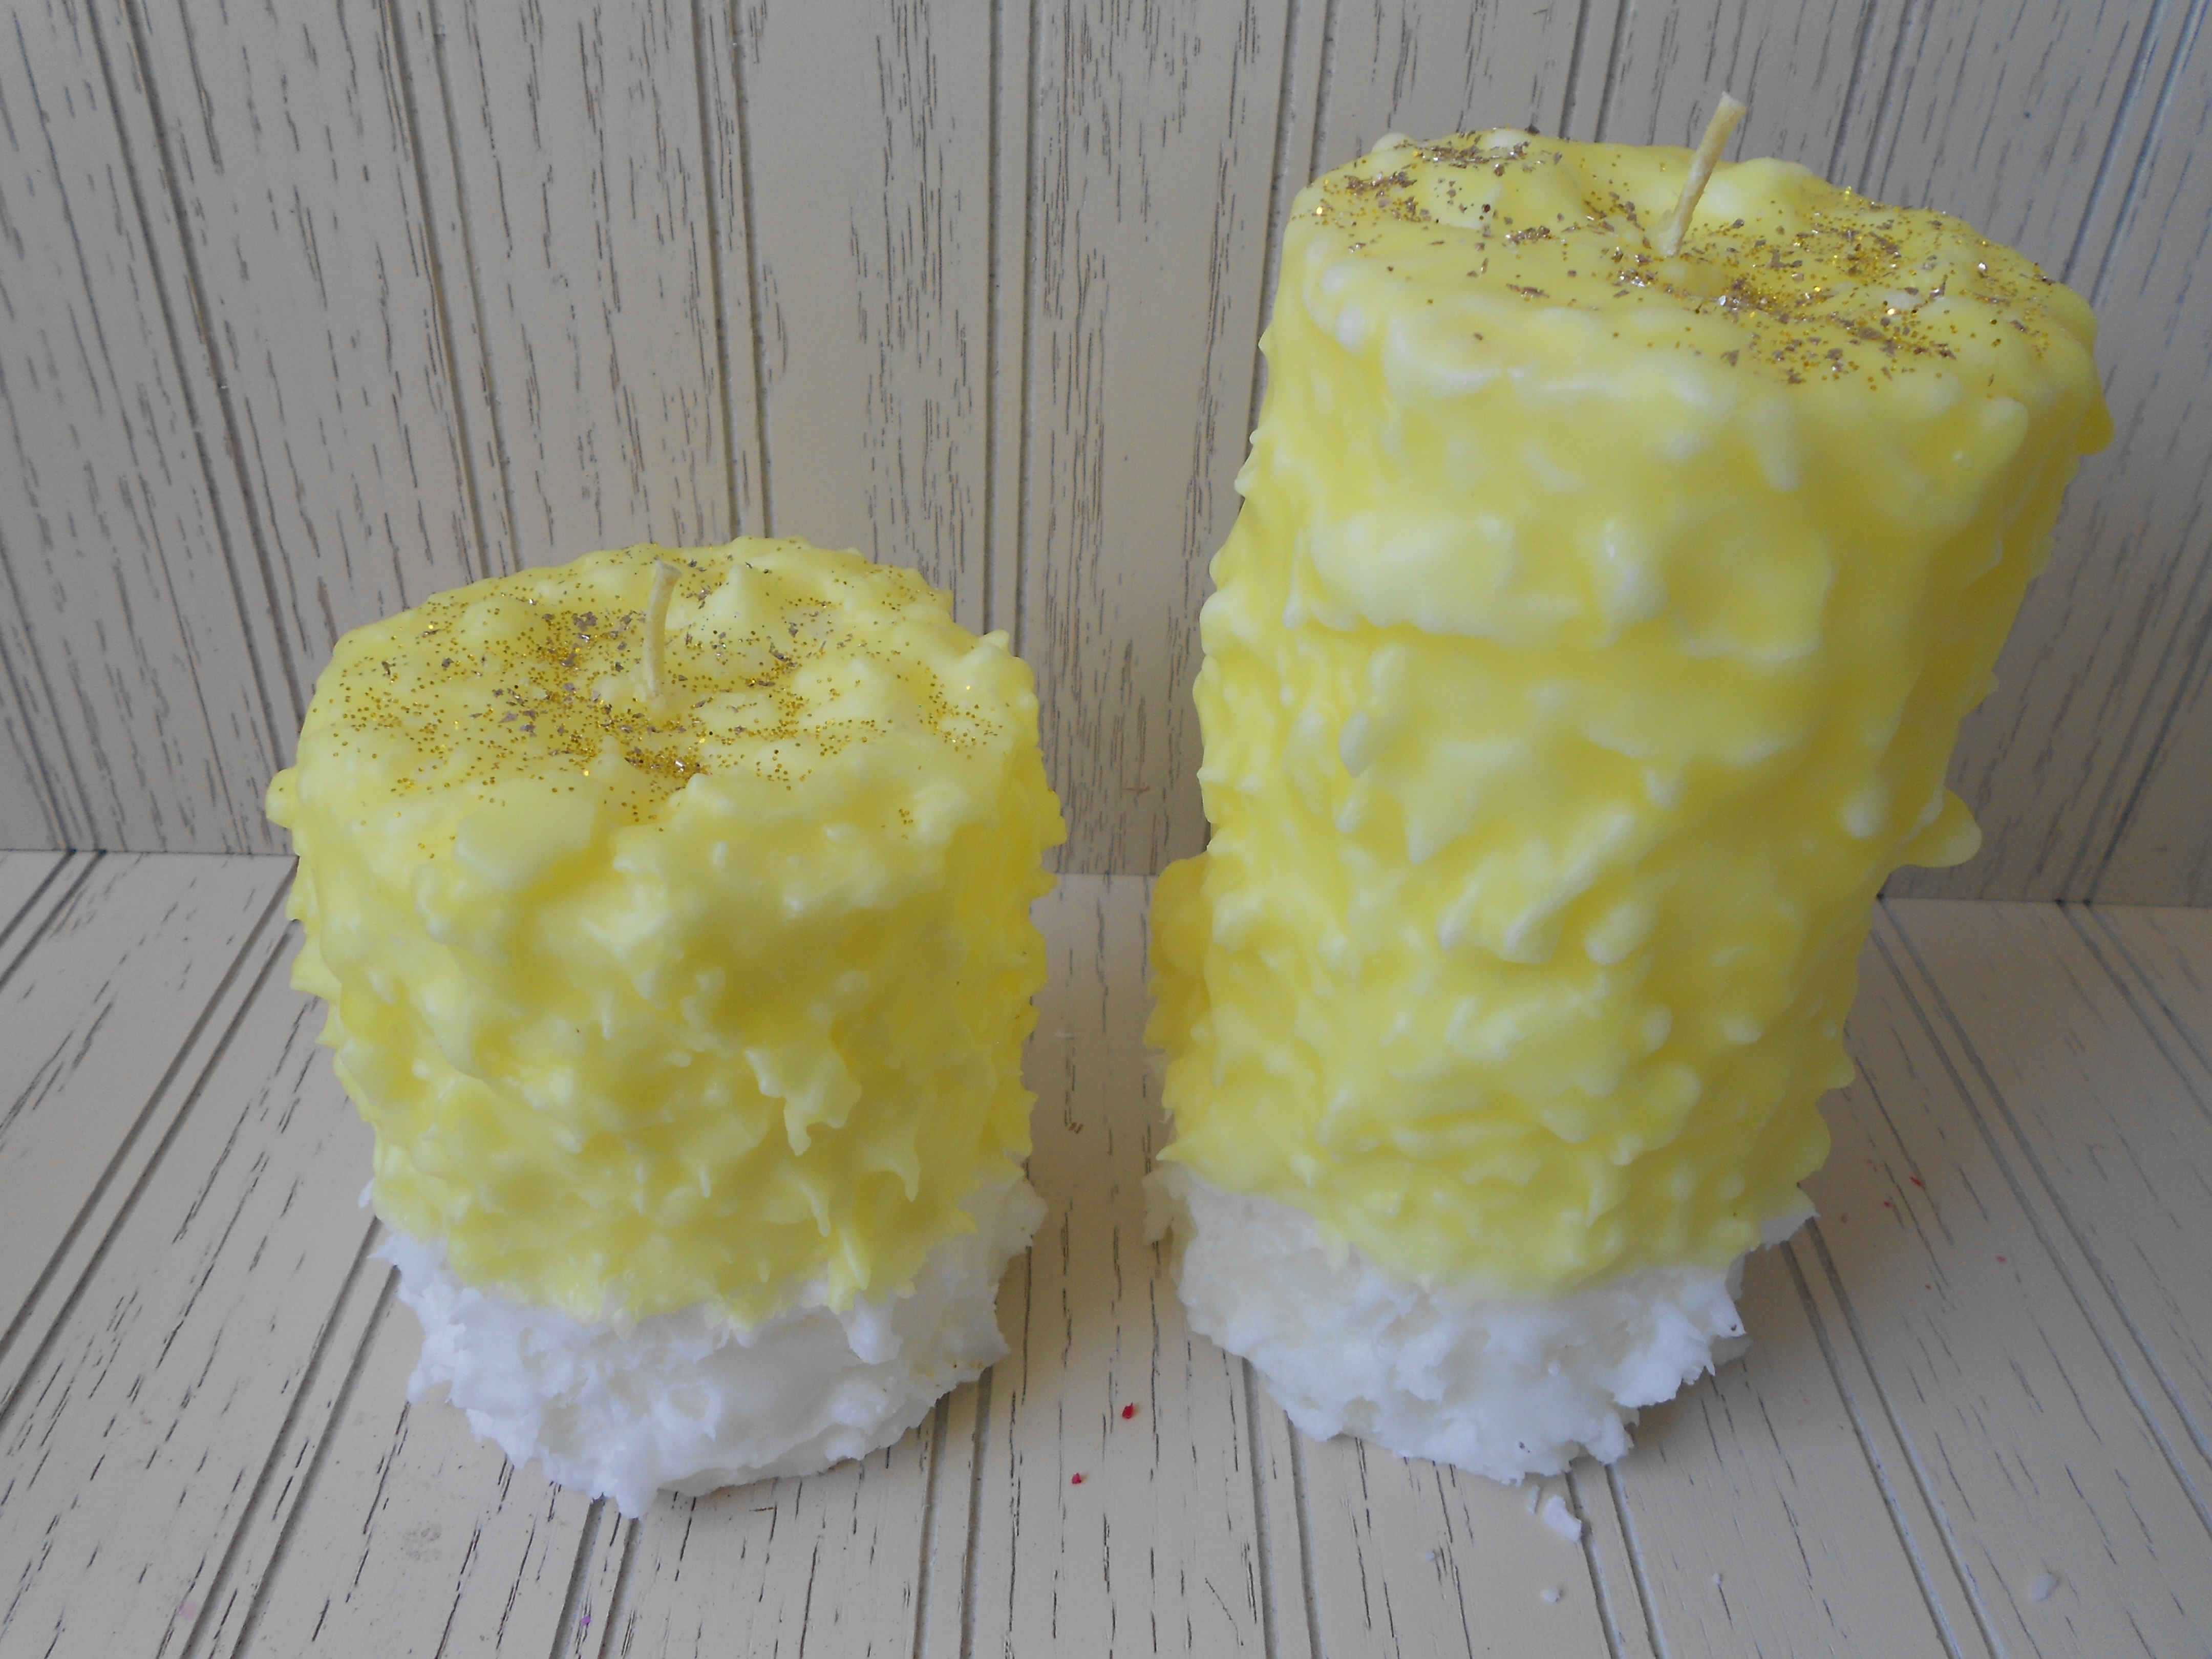 Vanilla Lemon Drop Hand Cake Candles from Stephens' Candlery